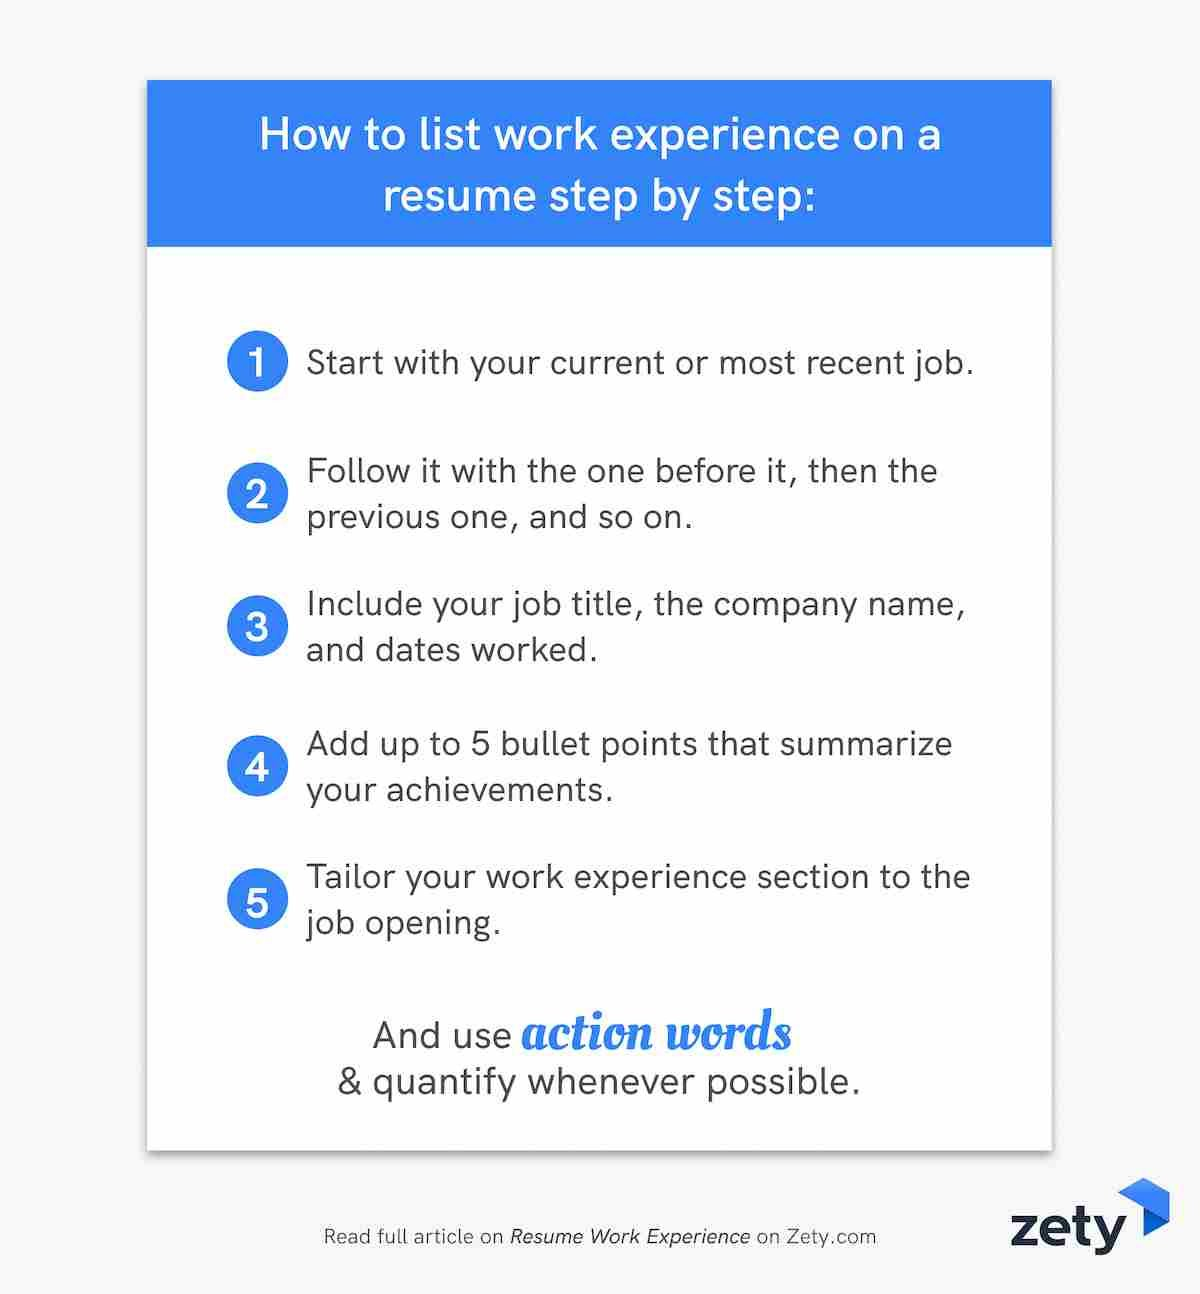 resume work experience history job description examples bullet points to on step by Resume Resume Job Bullet Points